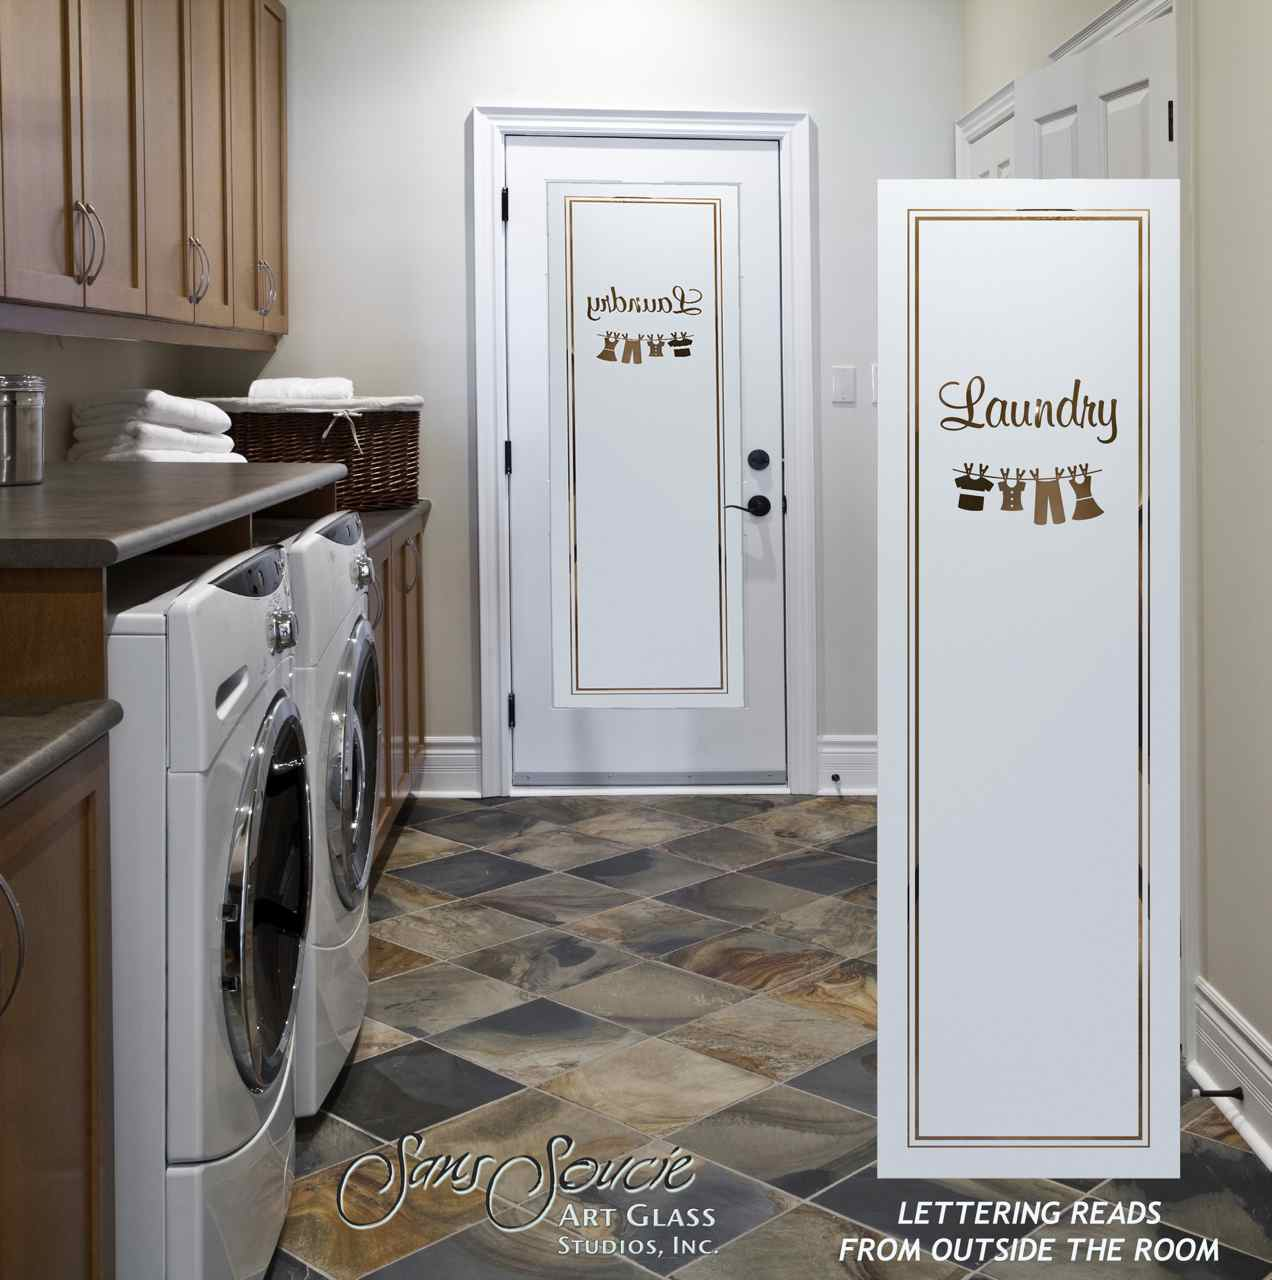 Simple Laundry Room Laundry Room Doors Sans Soucie Art Glass Laundry Room Doors Ventilation Laundry Room Door Half Glass houzz 01 Laundry Room Doors